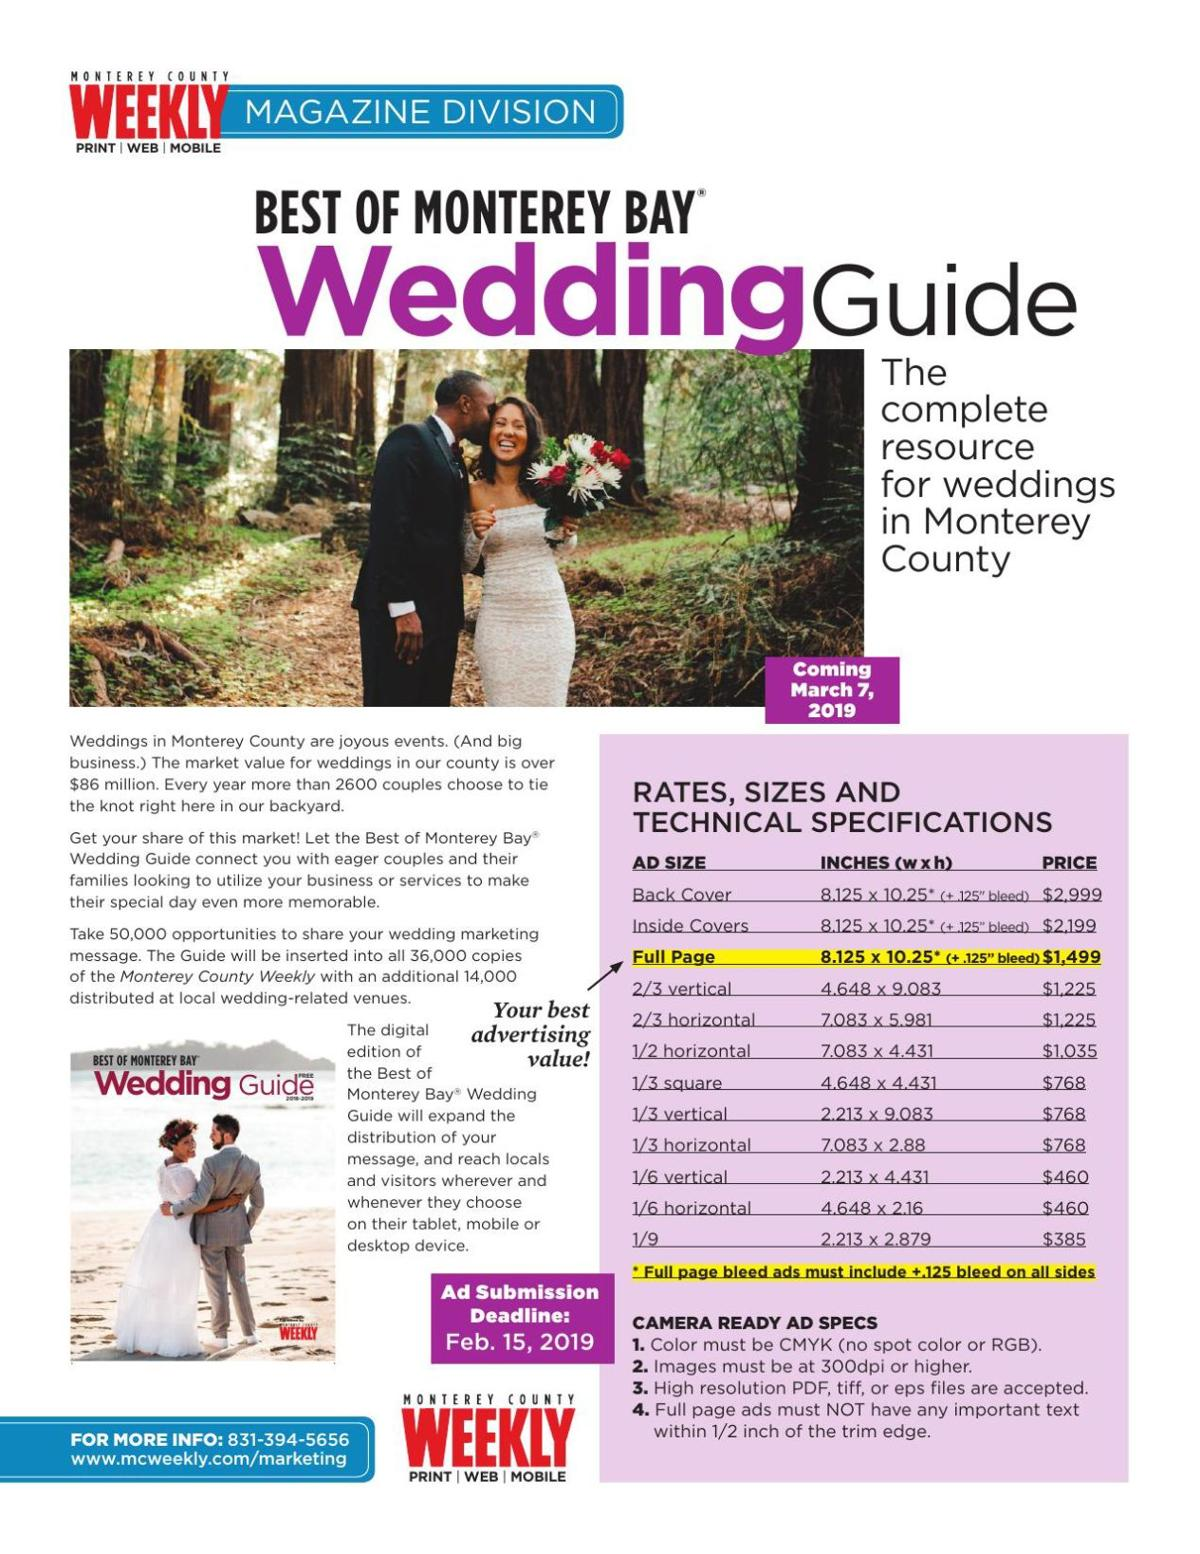 MCW Wedding Guide Rates 2019